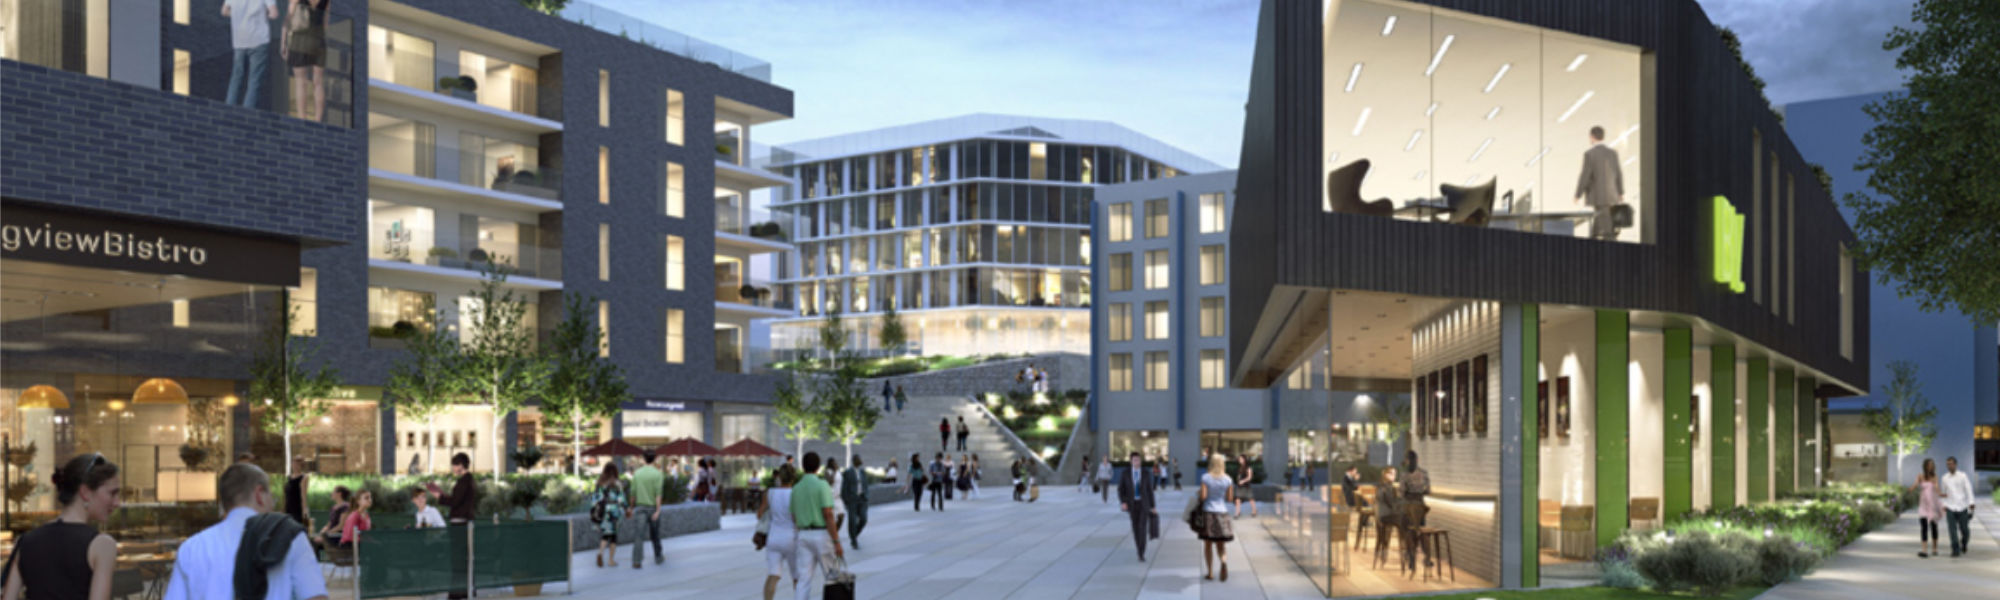 Artists impression of PCEs Project Sienna in Basingstoke